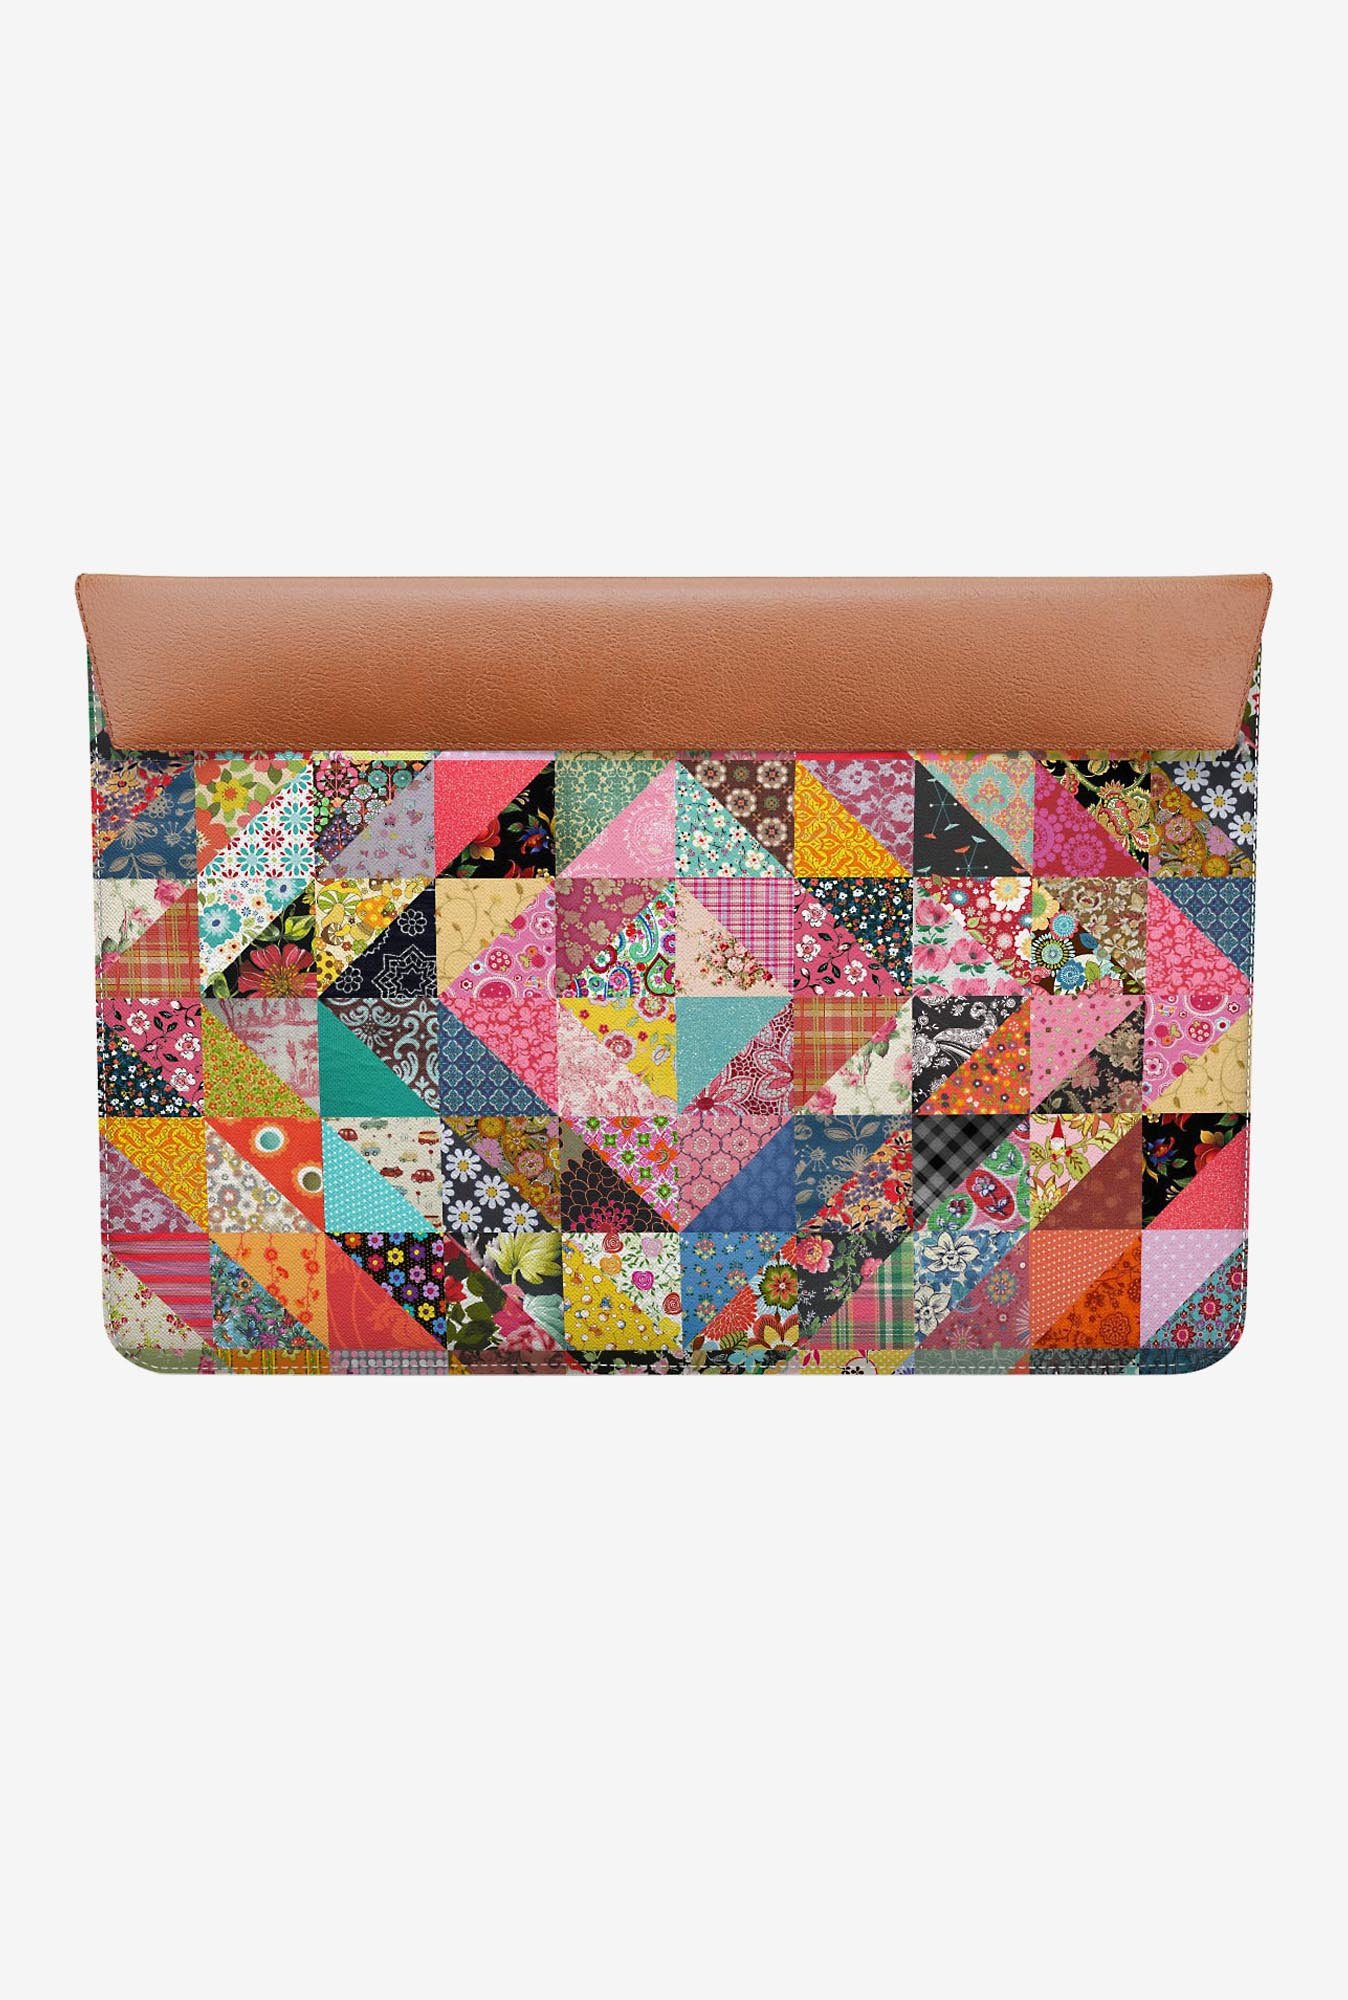 "DailyObjects Quilt MacBook Air 11"" Envelope Sleeve"